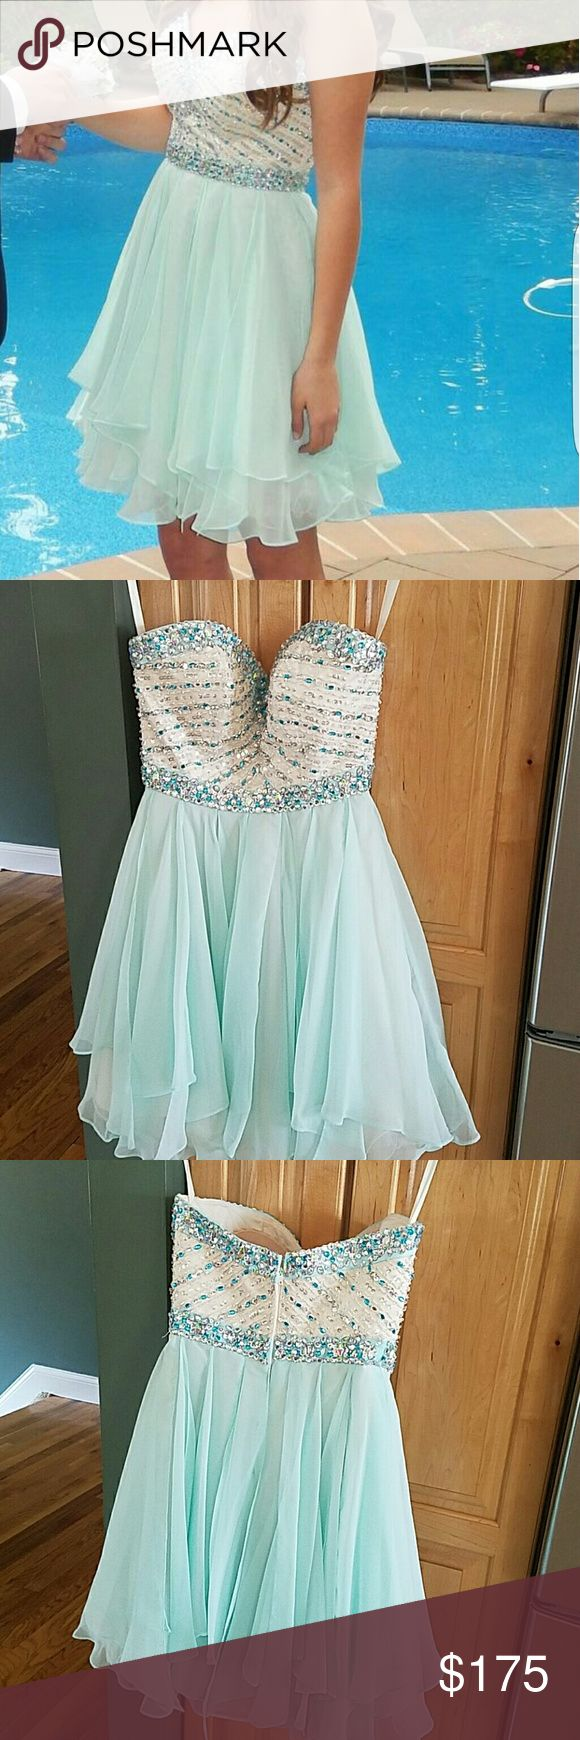 Girls sparkly short Prom/sweet 16 Mori Lee dress Beautiful mint beaded short  Mori Lee Prom/Sweet 16 size 4 dress. ( my daughter wears a size 0) so if your a size 0 this would be great!!    We added bra inserts to the dress.  If you have any questions,  please feel free to send me a message.  Thanks for looking!!!!?? Mori Lee Dresses Prom